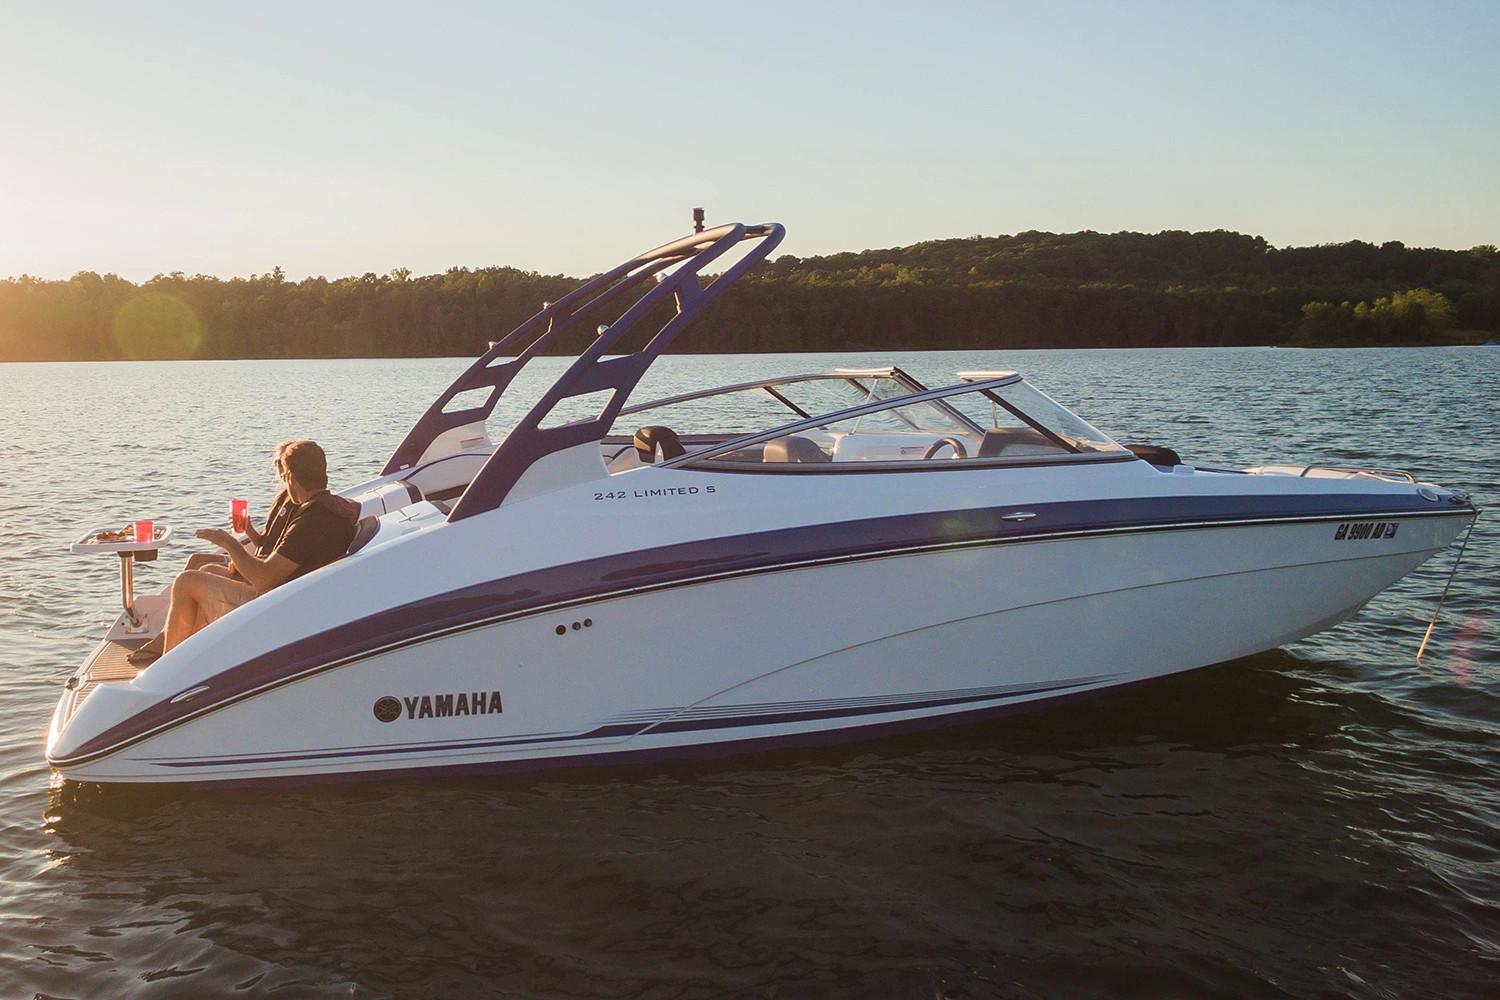 2018 Yamaha 242 Limited S in Shawnee, Oklahoma